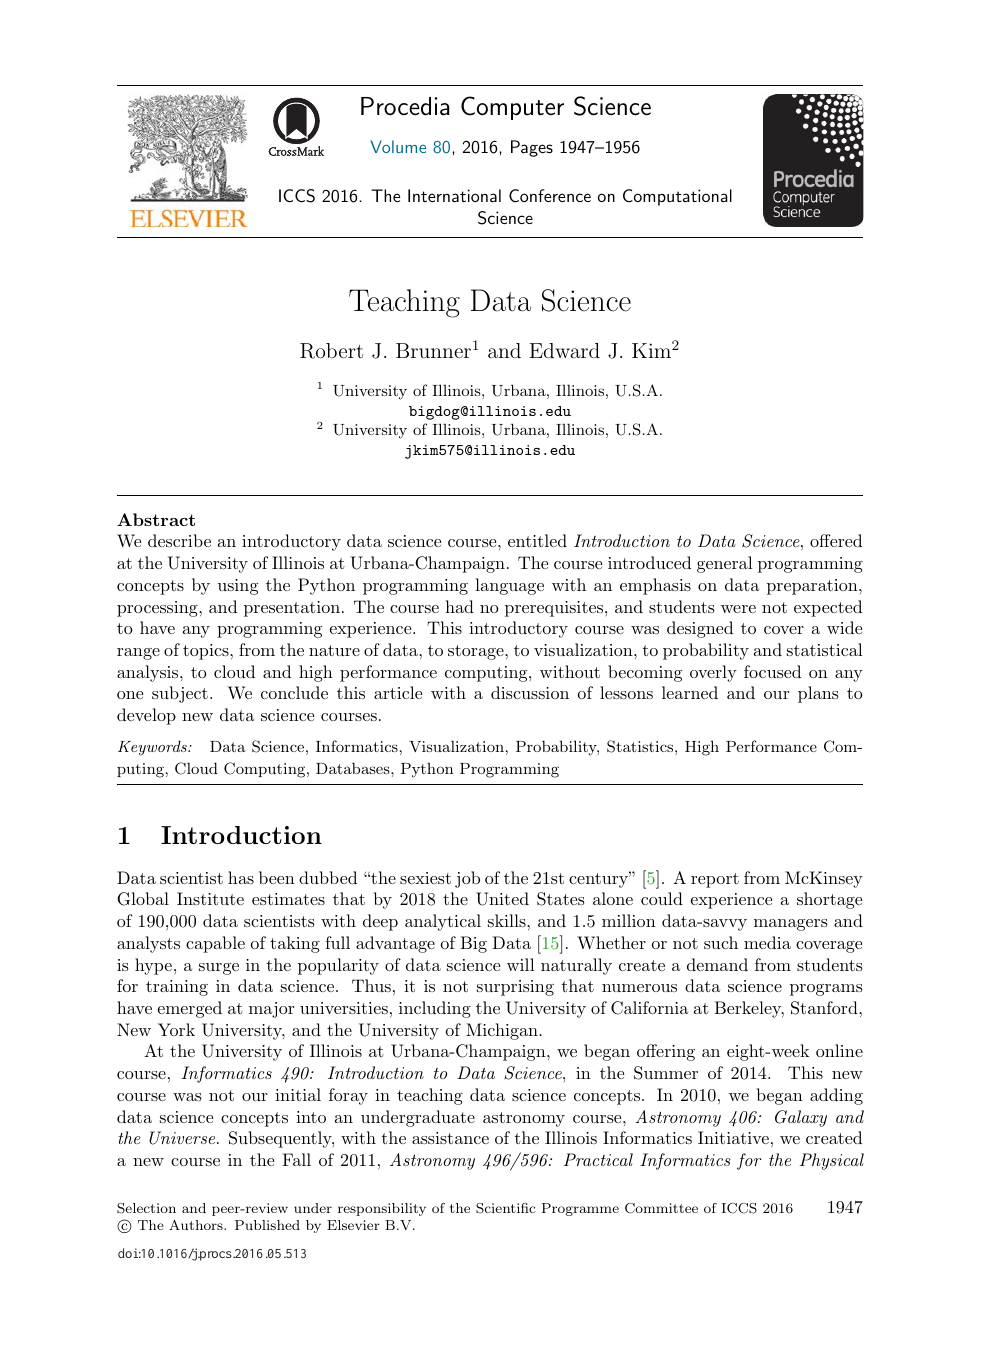 Teaching Data Science – topic of research paper in Educational